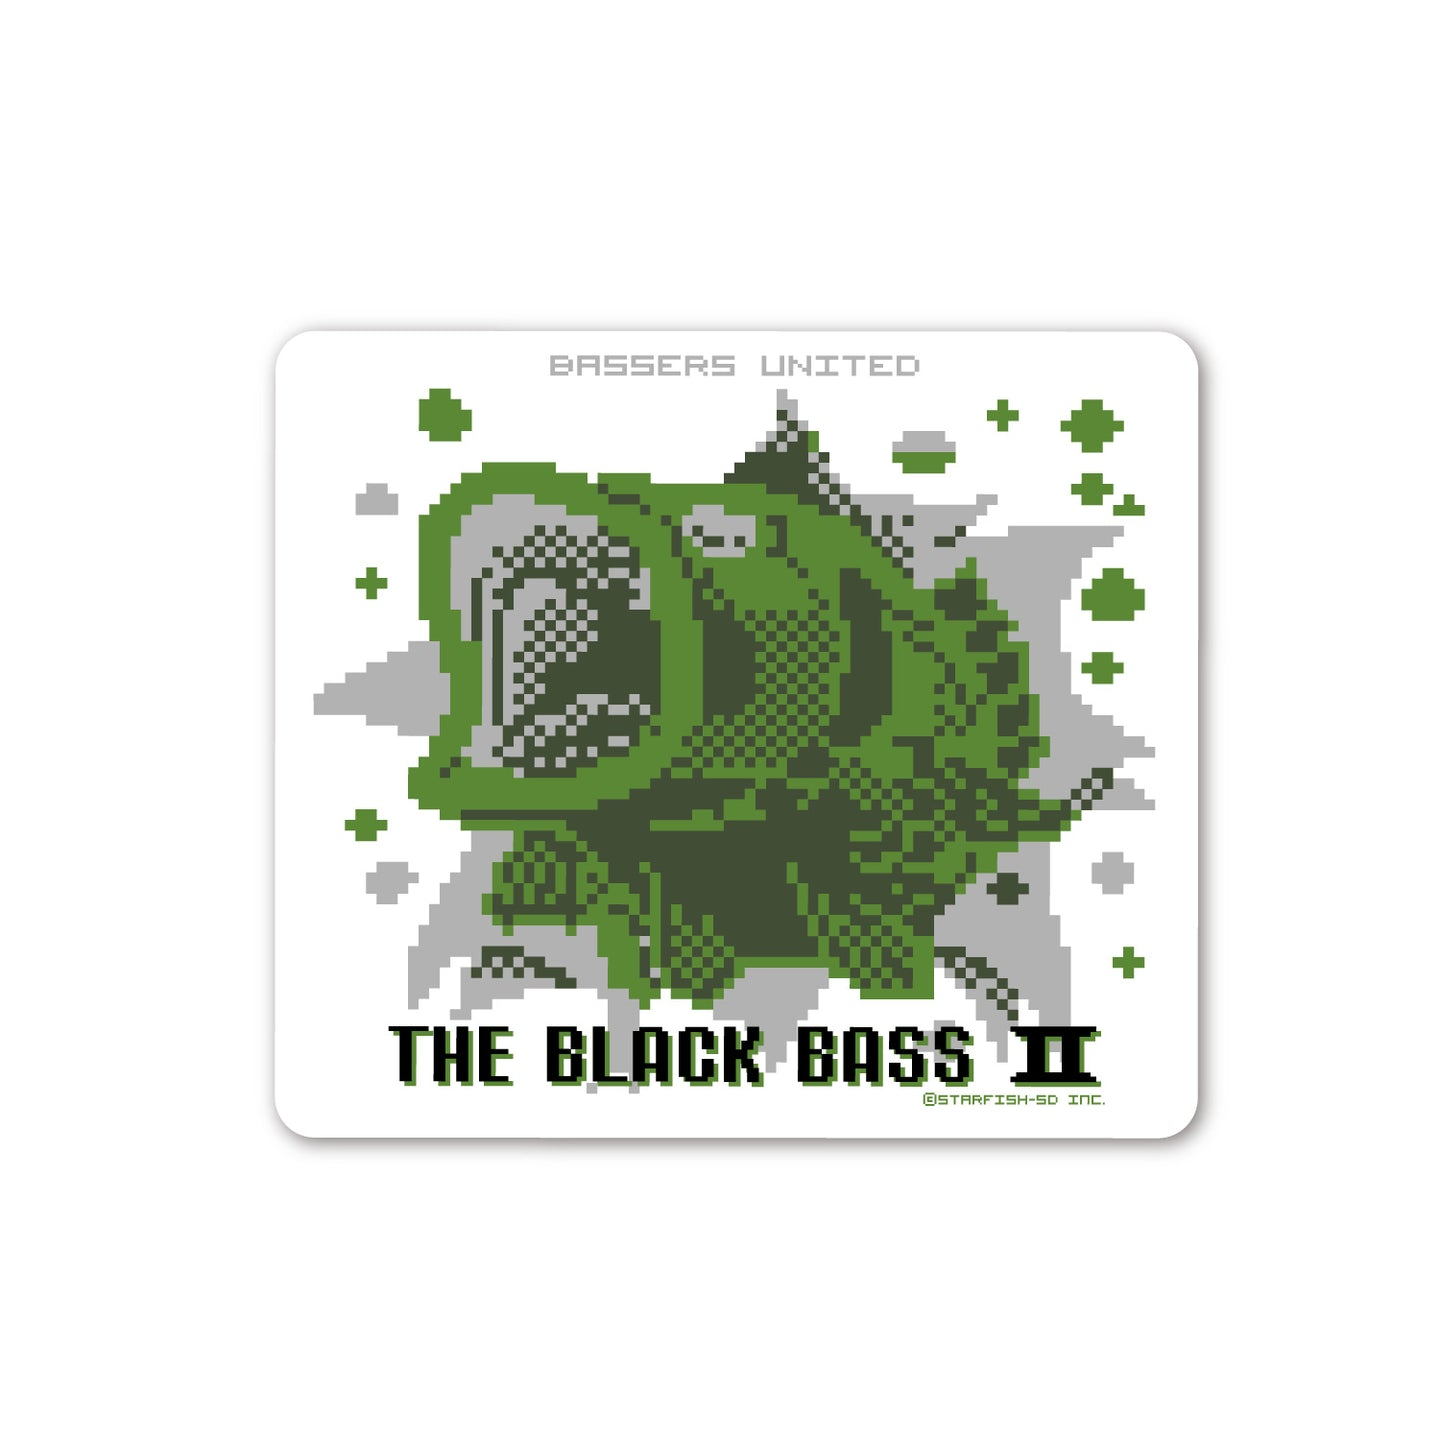 8BIT BASS STICKER